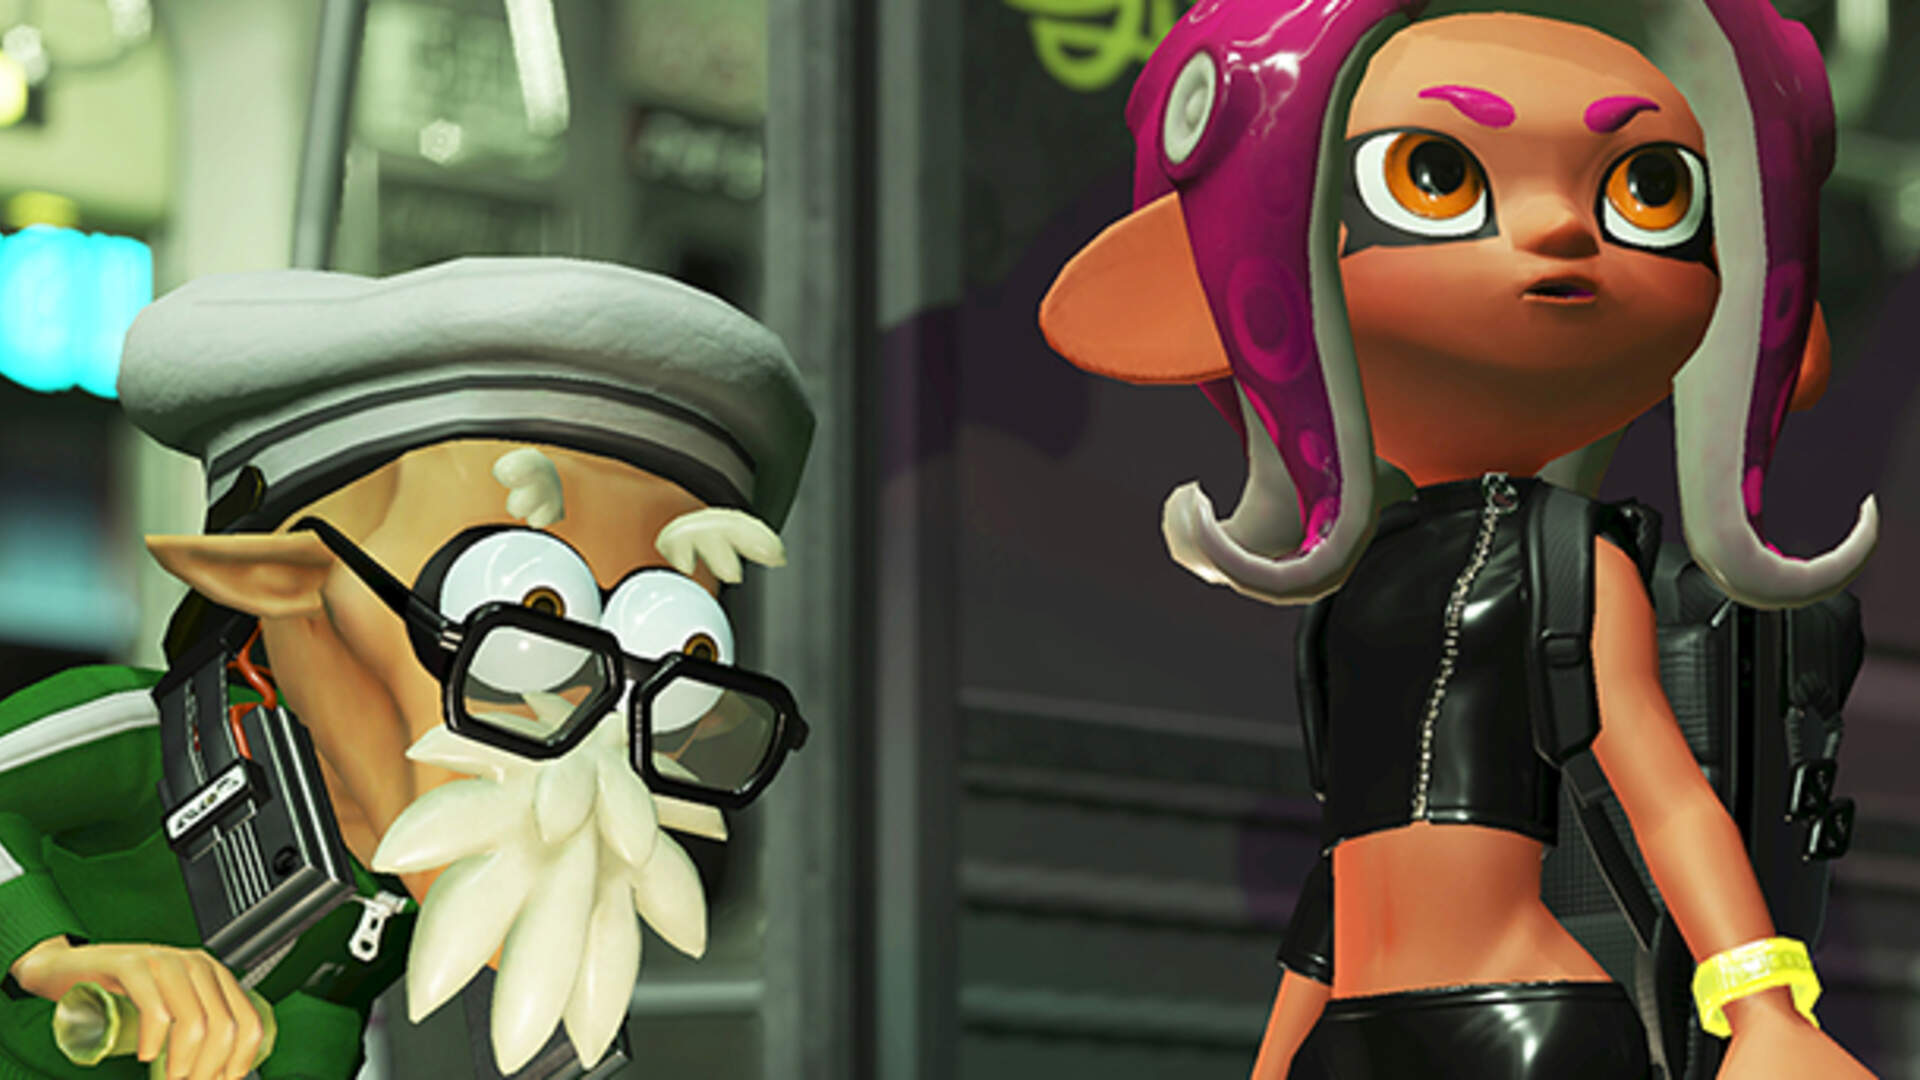 Nintendo Direct Recap: Smash Bros, Splatoon Expansion, and Ports, Oh My!